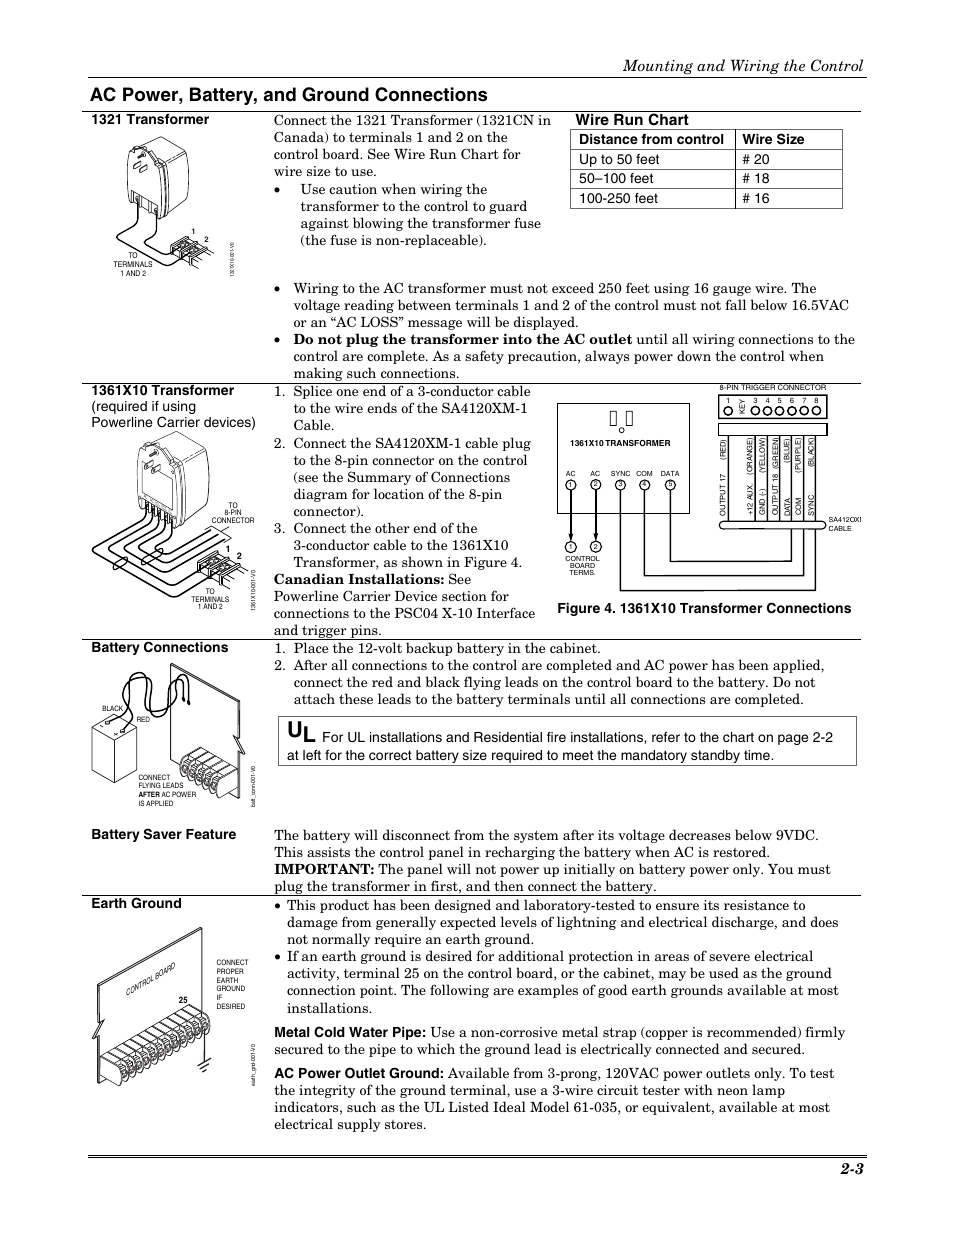 Ac power battery and ground connections wire run chart mounting ac power battery and ground connections wire run chart mounting and wiring the control 2 3 honeywell vista 20p user manual page 9 80 greentooth Image collections